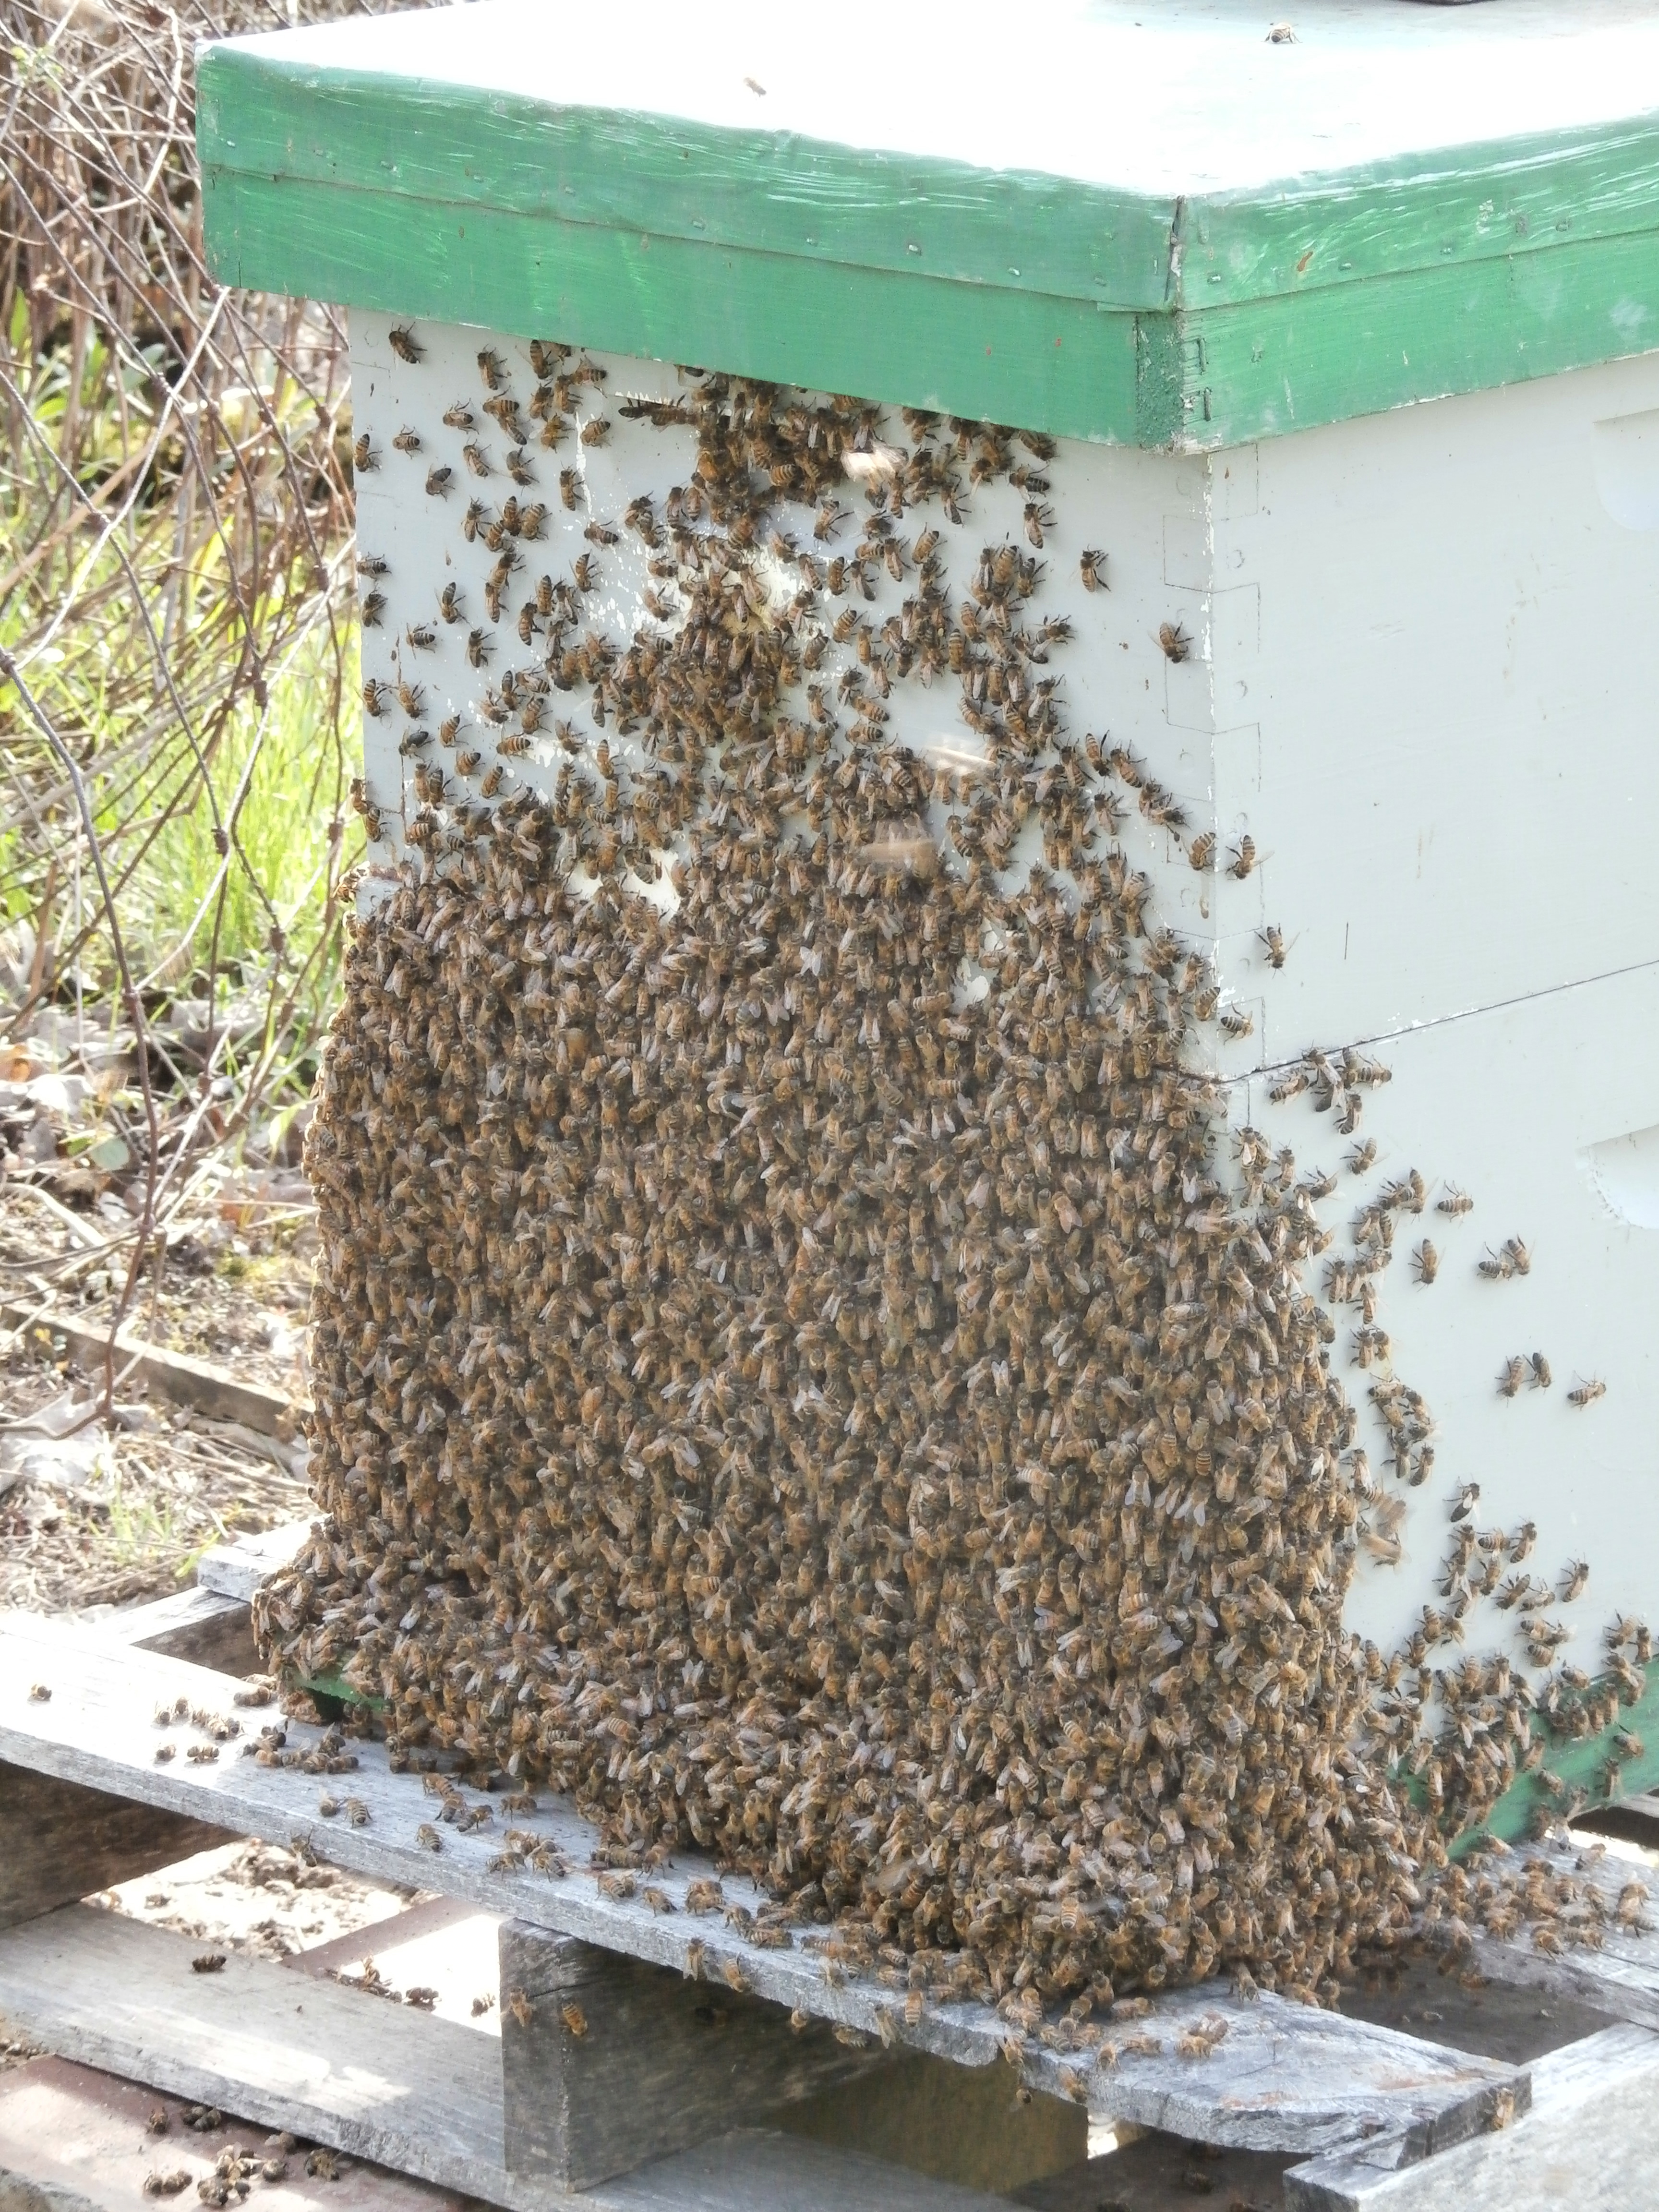 Honey Bees Ready to work